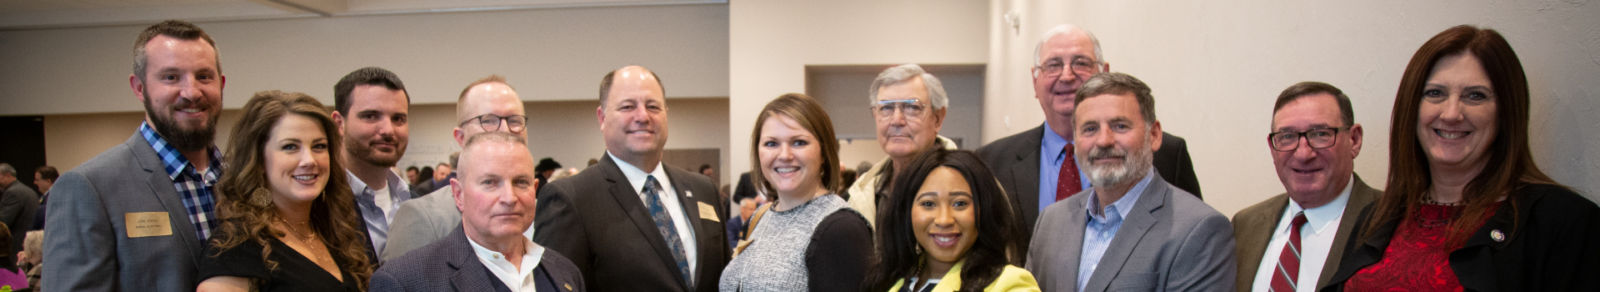 Up close photo of the faces of cooperative members and legislative staff/board members